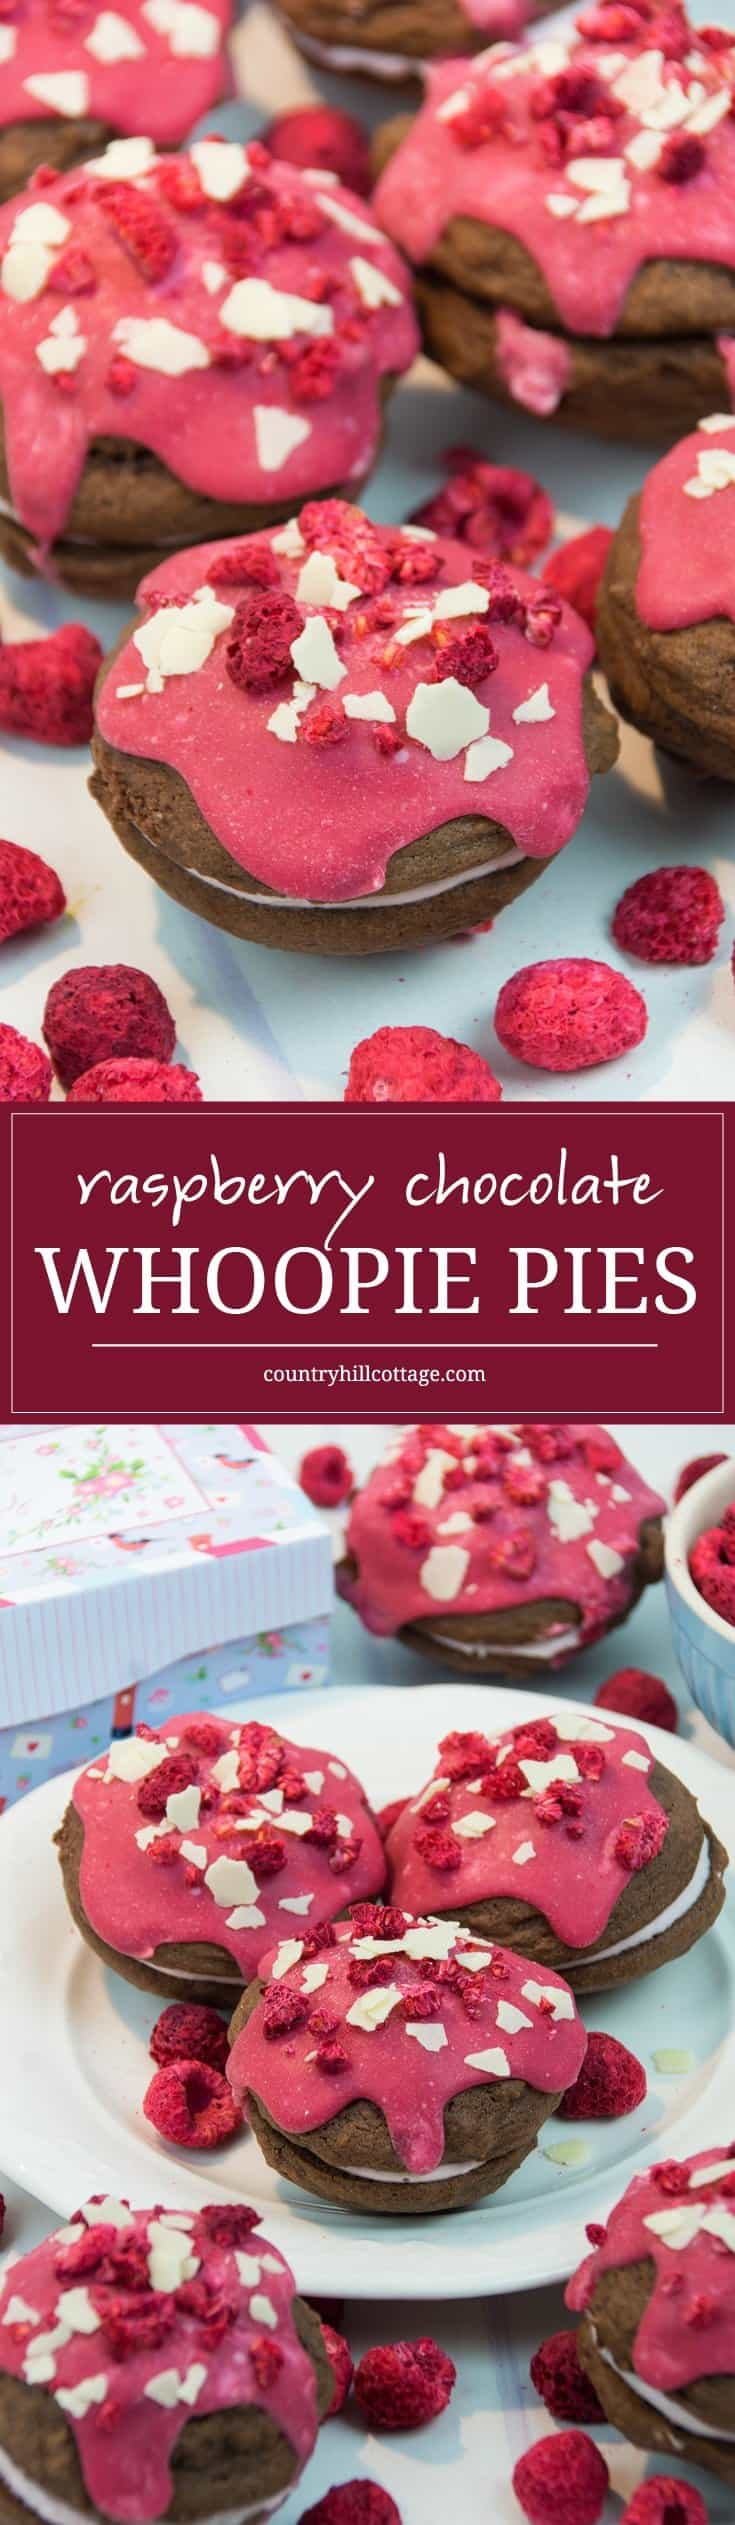 Send love to the special ones in your life with scrumptious raspberries chocolate whoopie pies! These cookies have a soft, cakey texture and a fruity, melt-in-your-mouth filling. | countryhillcottage.com